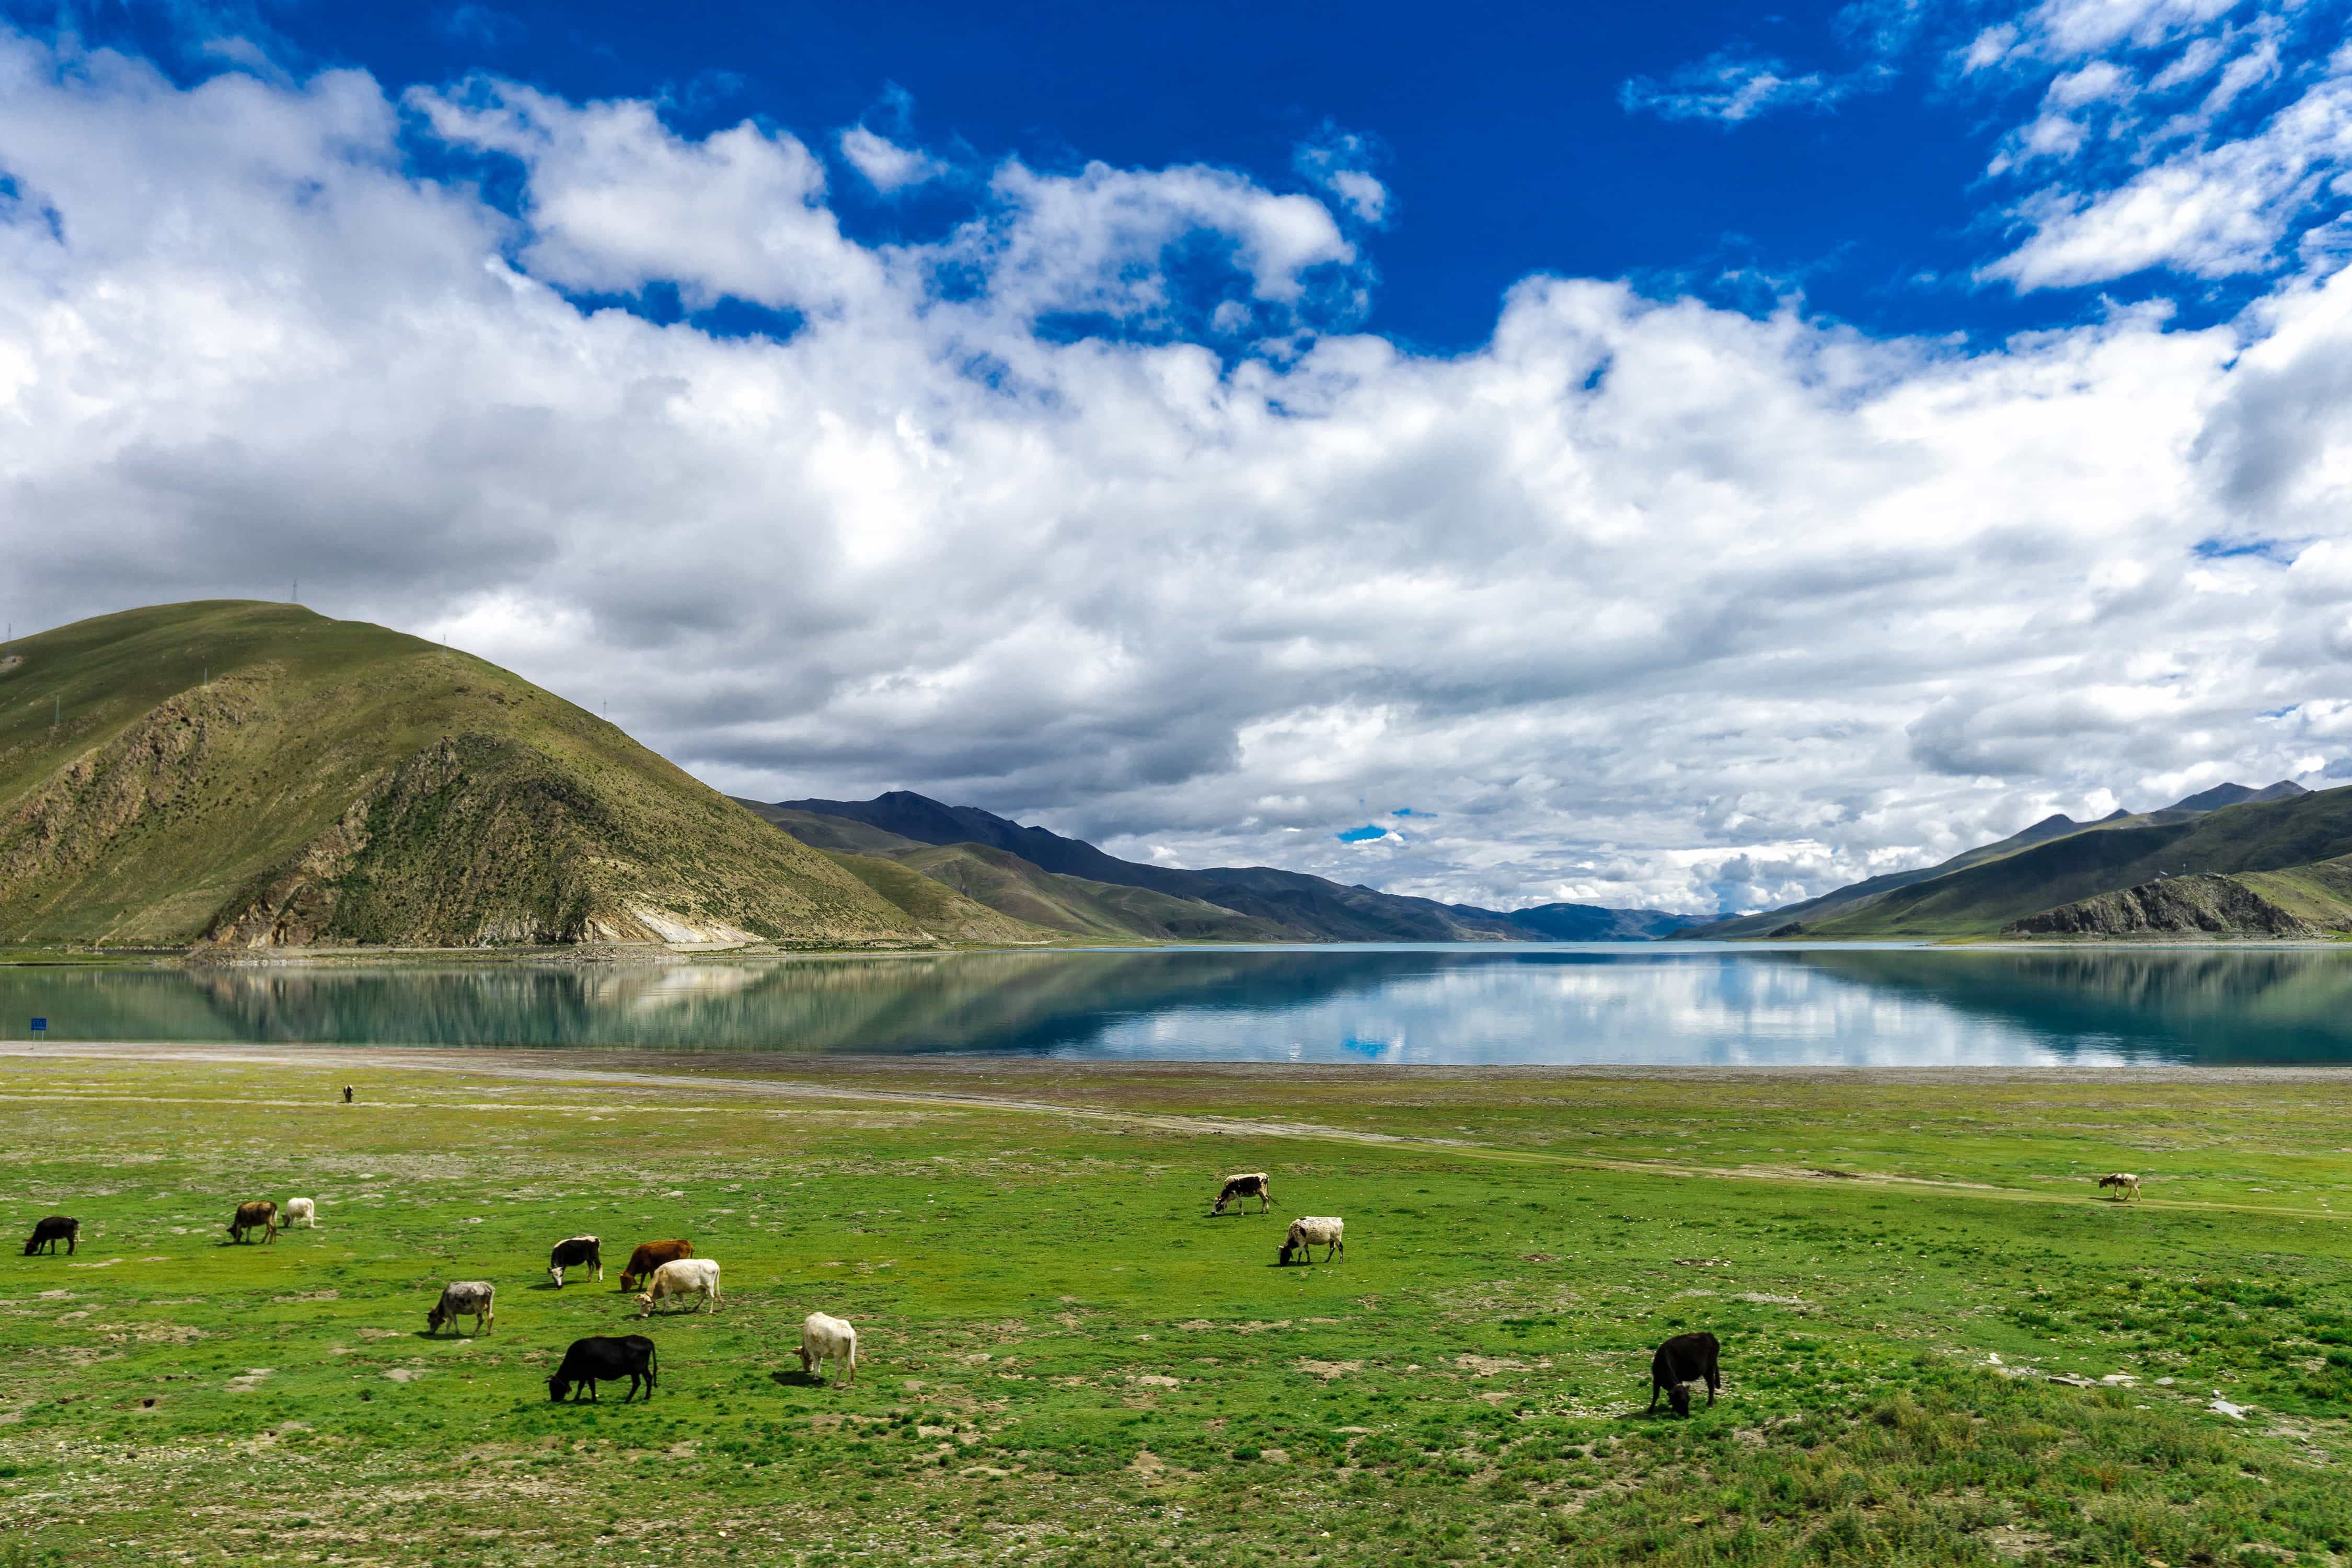 Herd of cows near Yamdrok lake in Tibet